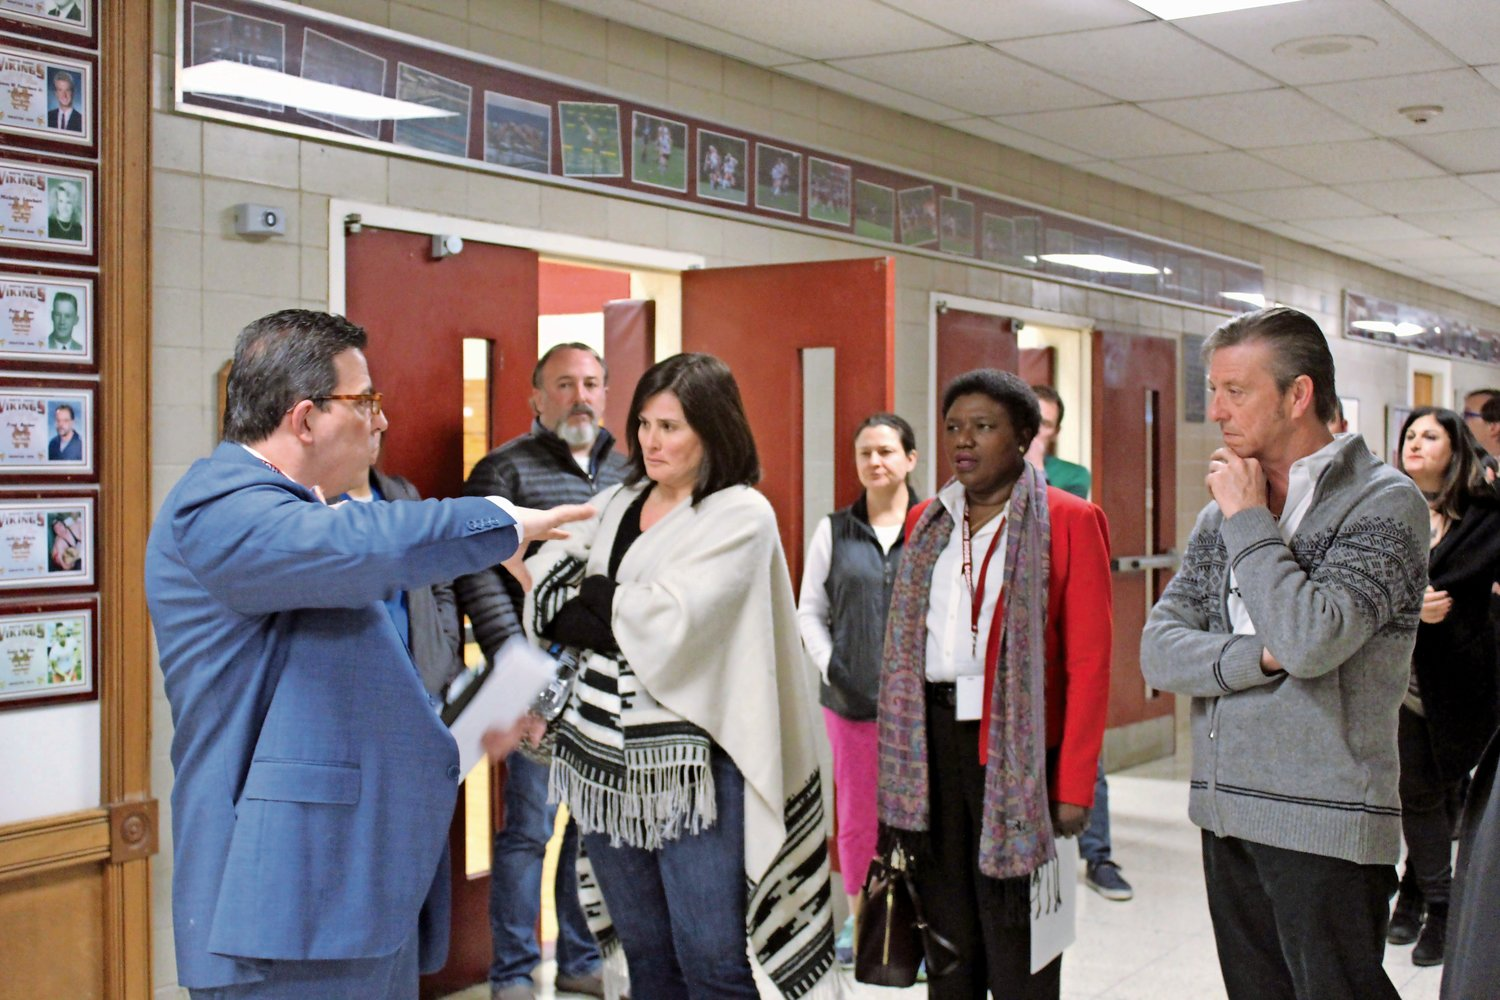 Superintendent Dr. Peter Giarrizzo, left, took community members on a tour of the district's polling place for the annual budget vote and trustee election, which will be held, as in prior years, in the North Shore High School gym.